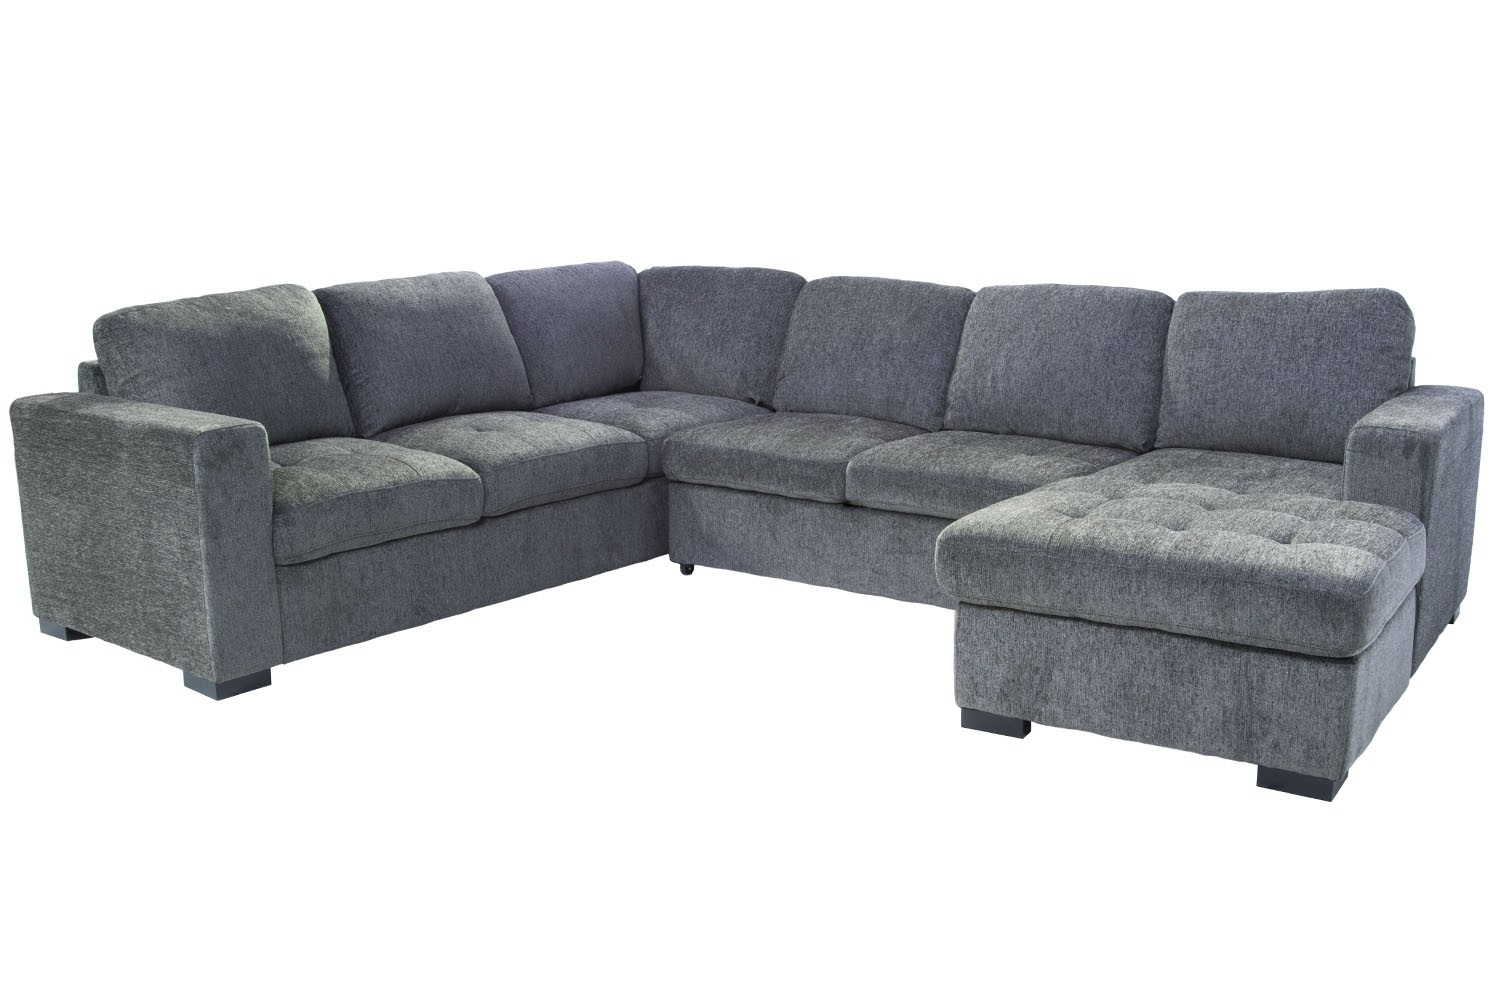 Sectional Sofas | Save Mor Online And In Store In Aspen 2 Piece Sectionals With Raf Chaise (Image 22 of 25)